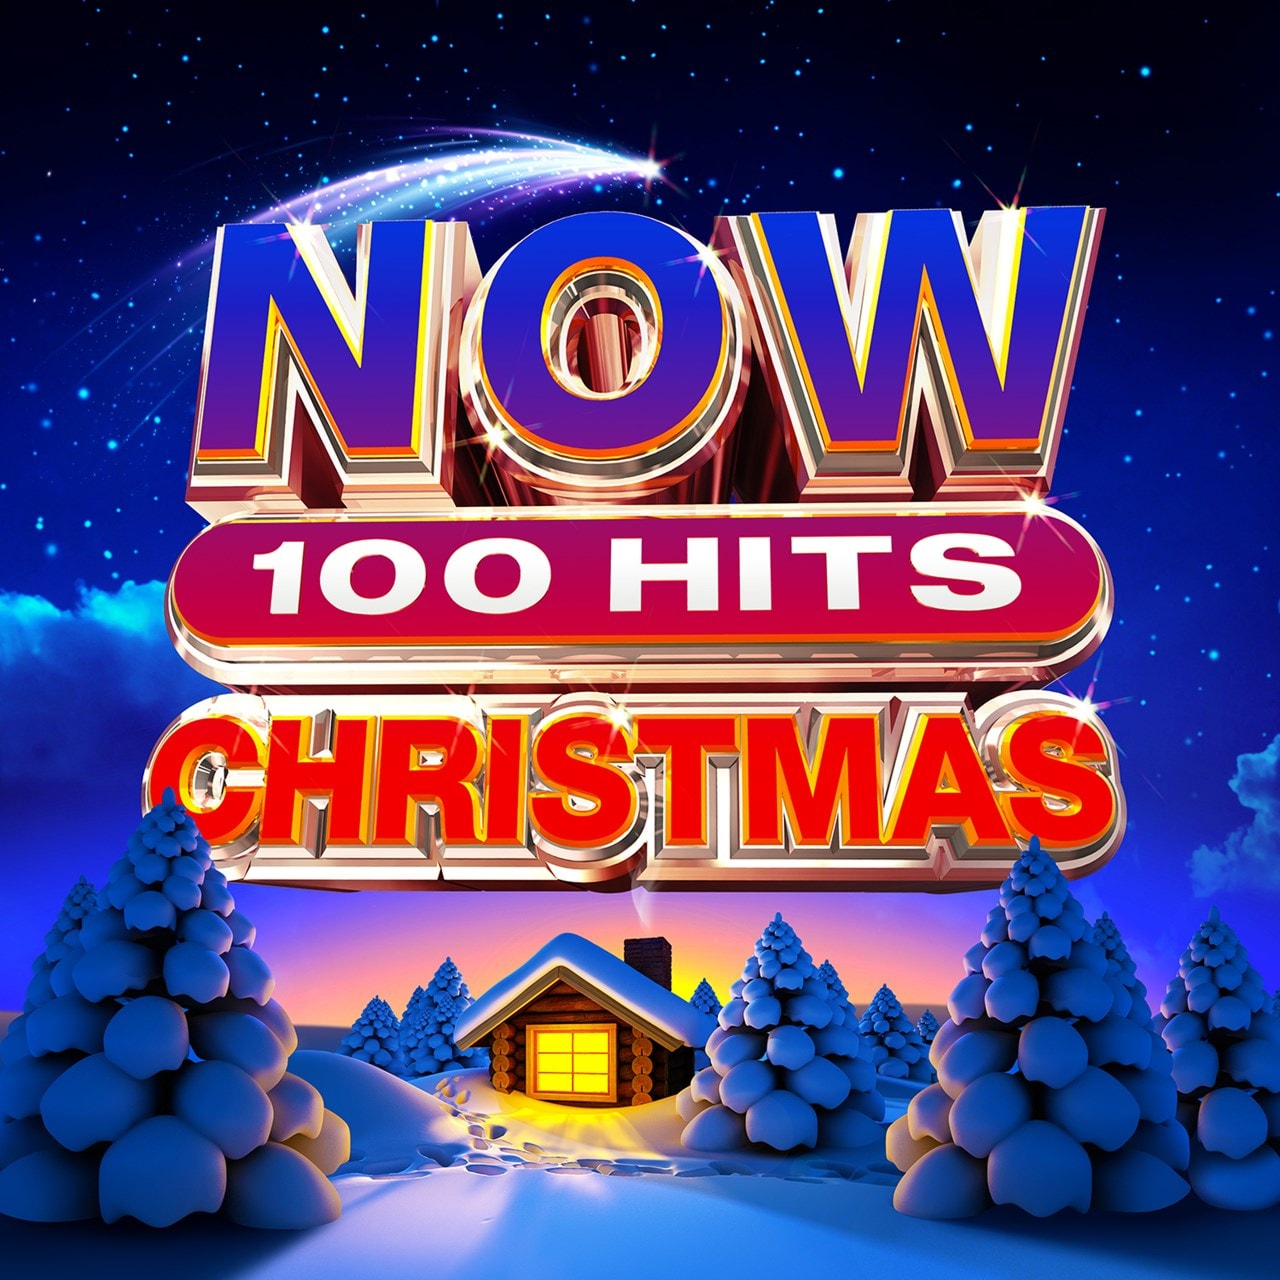 Now Christmas 2020 Hmv NOW 100 Hits: Christmas | Free shipping over £20   HMV Store